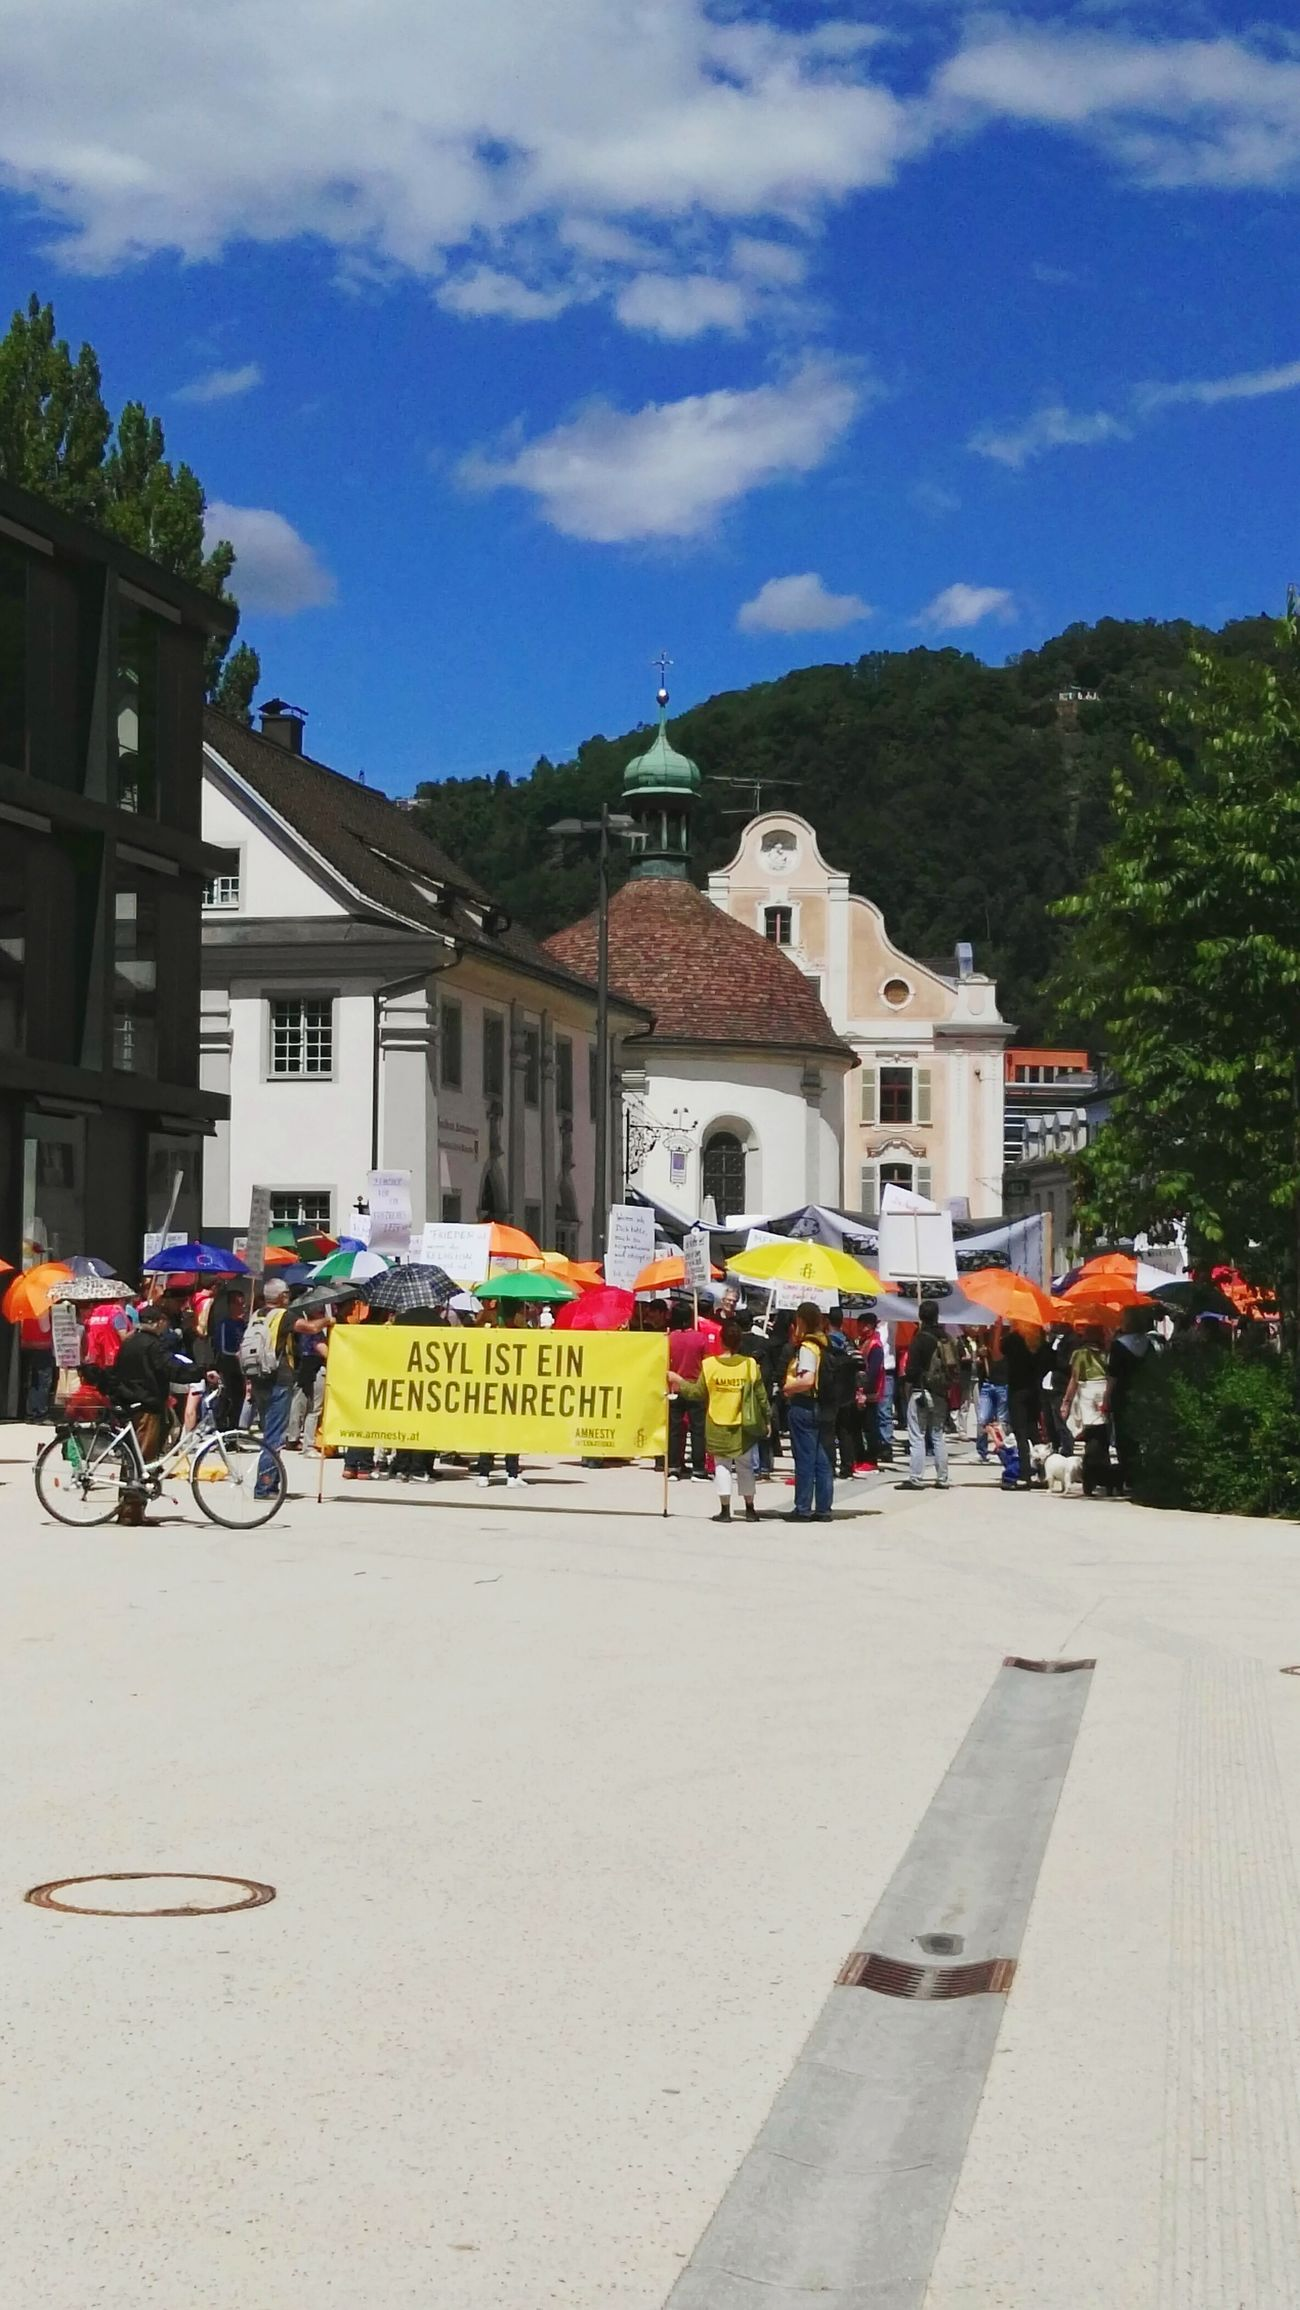 Demo For Asylum Asyl Demo Amnesty International AmnestyDemonstration, Bregenz